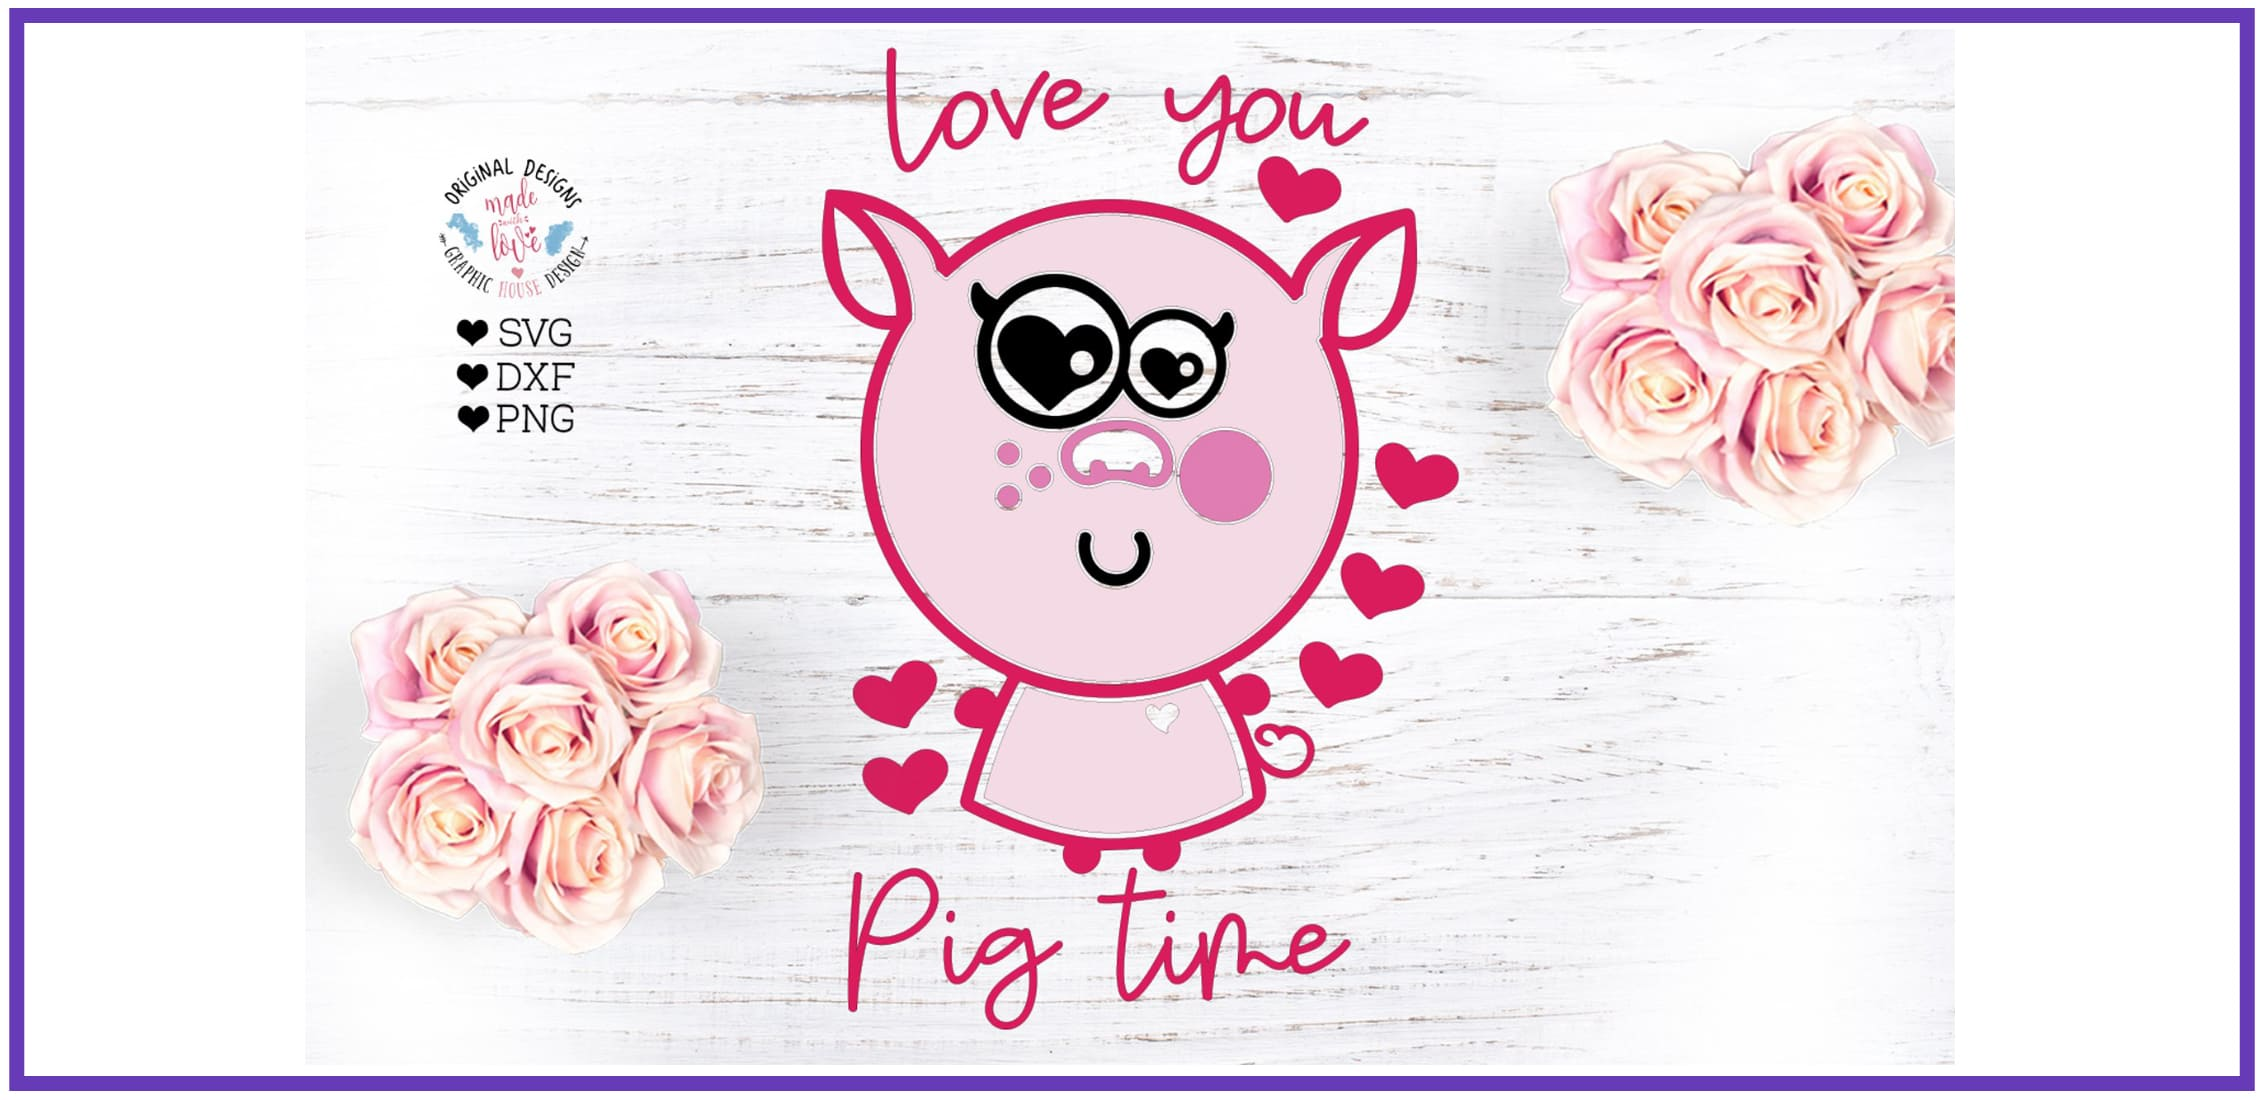 70+ Valentine's Day Cards 2021. Do not Forget about a Heartfelt Card for Your Valentine - valentines day card 24